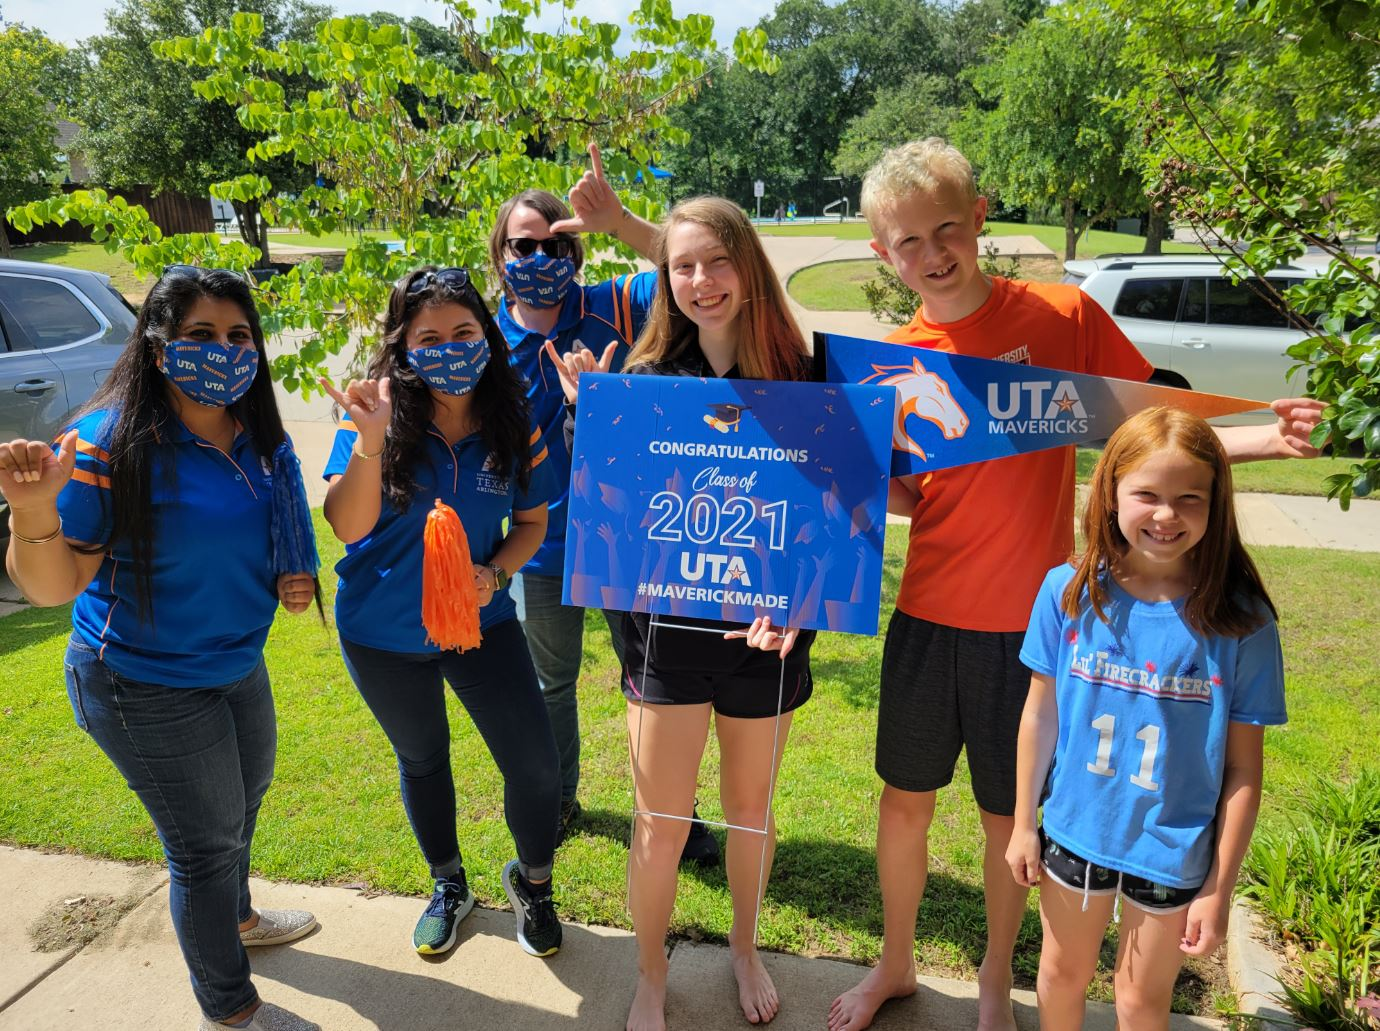 """Bailey Samide, holding a UTA sign, with UTA staff and members of her family"""" _languageinserted=""""true"""